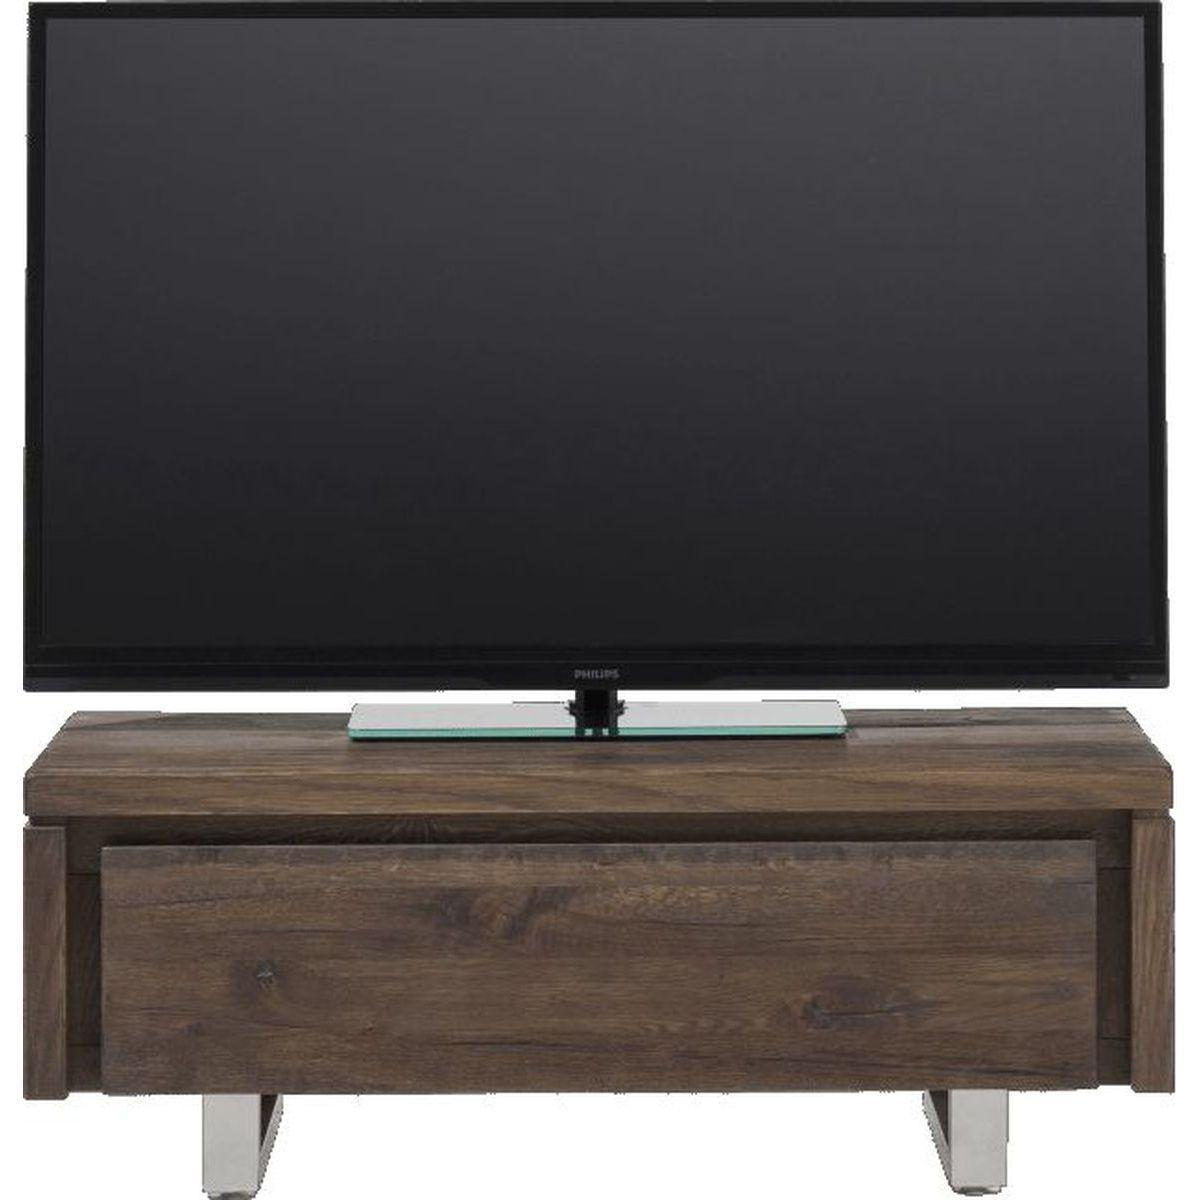 MORE by H&H Meuble TV 100cm vintage clay